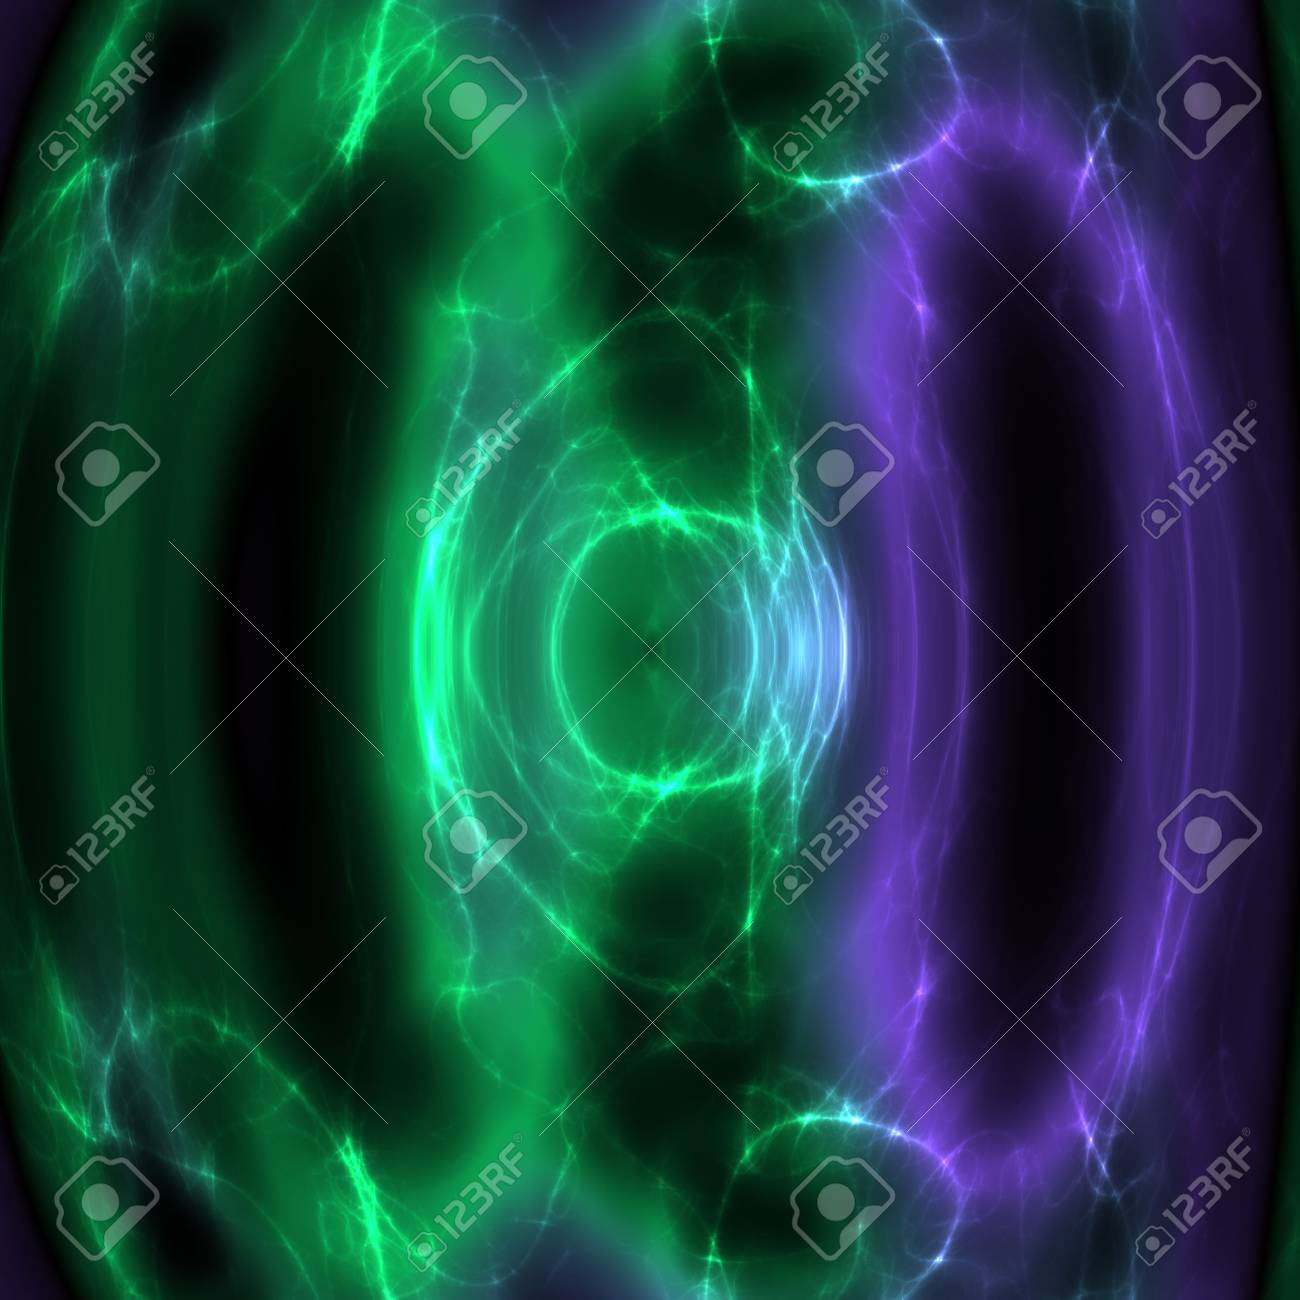 Swirly wavy circular flowing energy and colors, abstract illustration Stock Illustration - 5560416